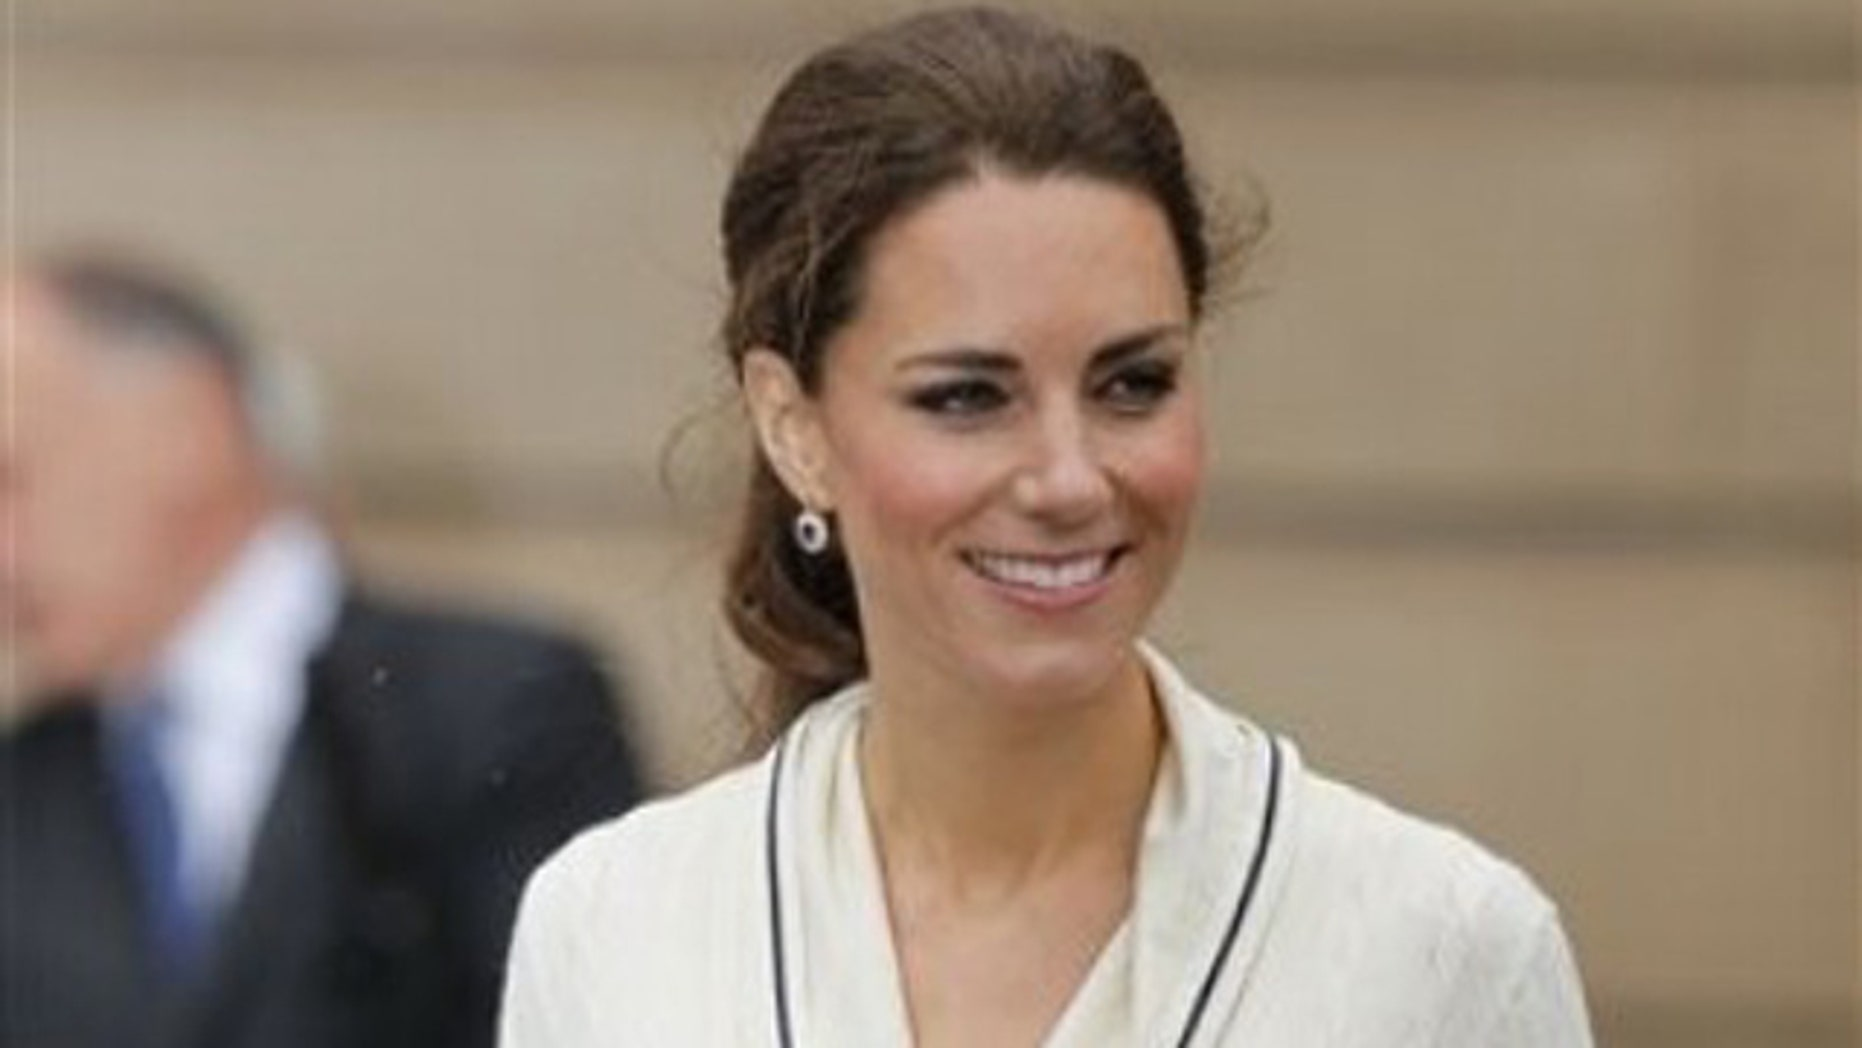 Kate, the Duchess of Cambridge, attends at a ceremony at Province House in Charlottetown on Prince Edward Island as part of their Royal Tour of Canada, Monday, July 4, 2011. (AP Photo/Robert F. Bukaty)